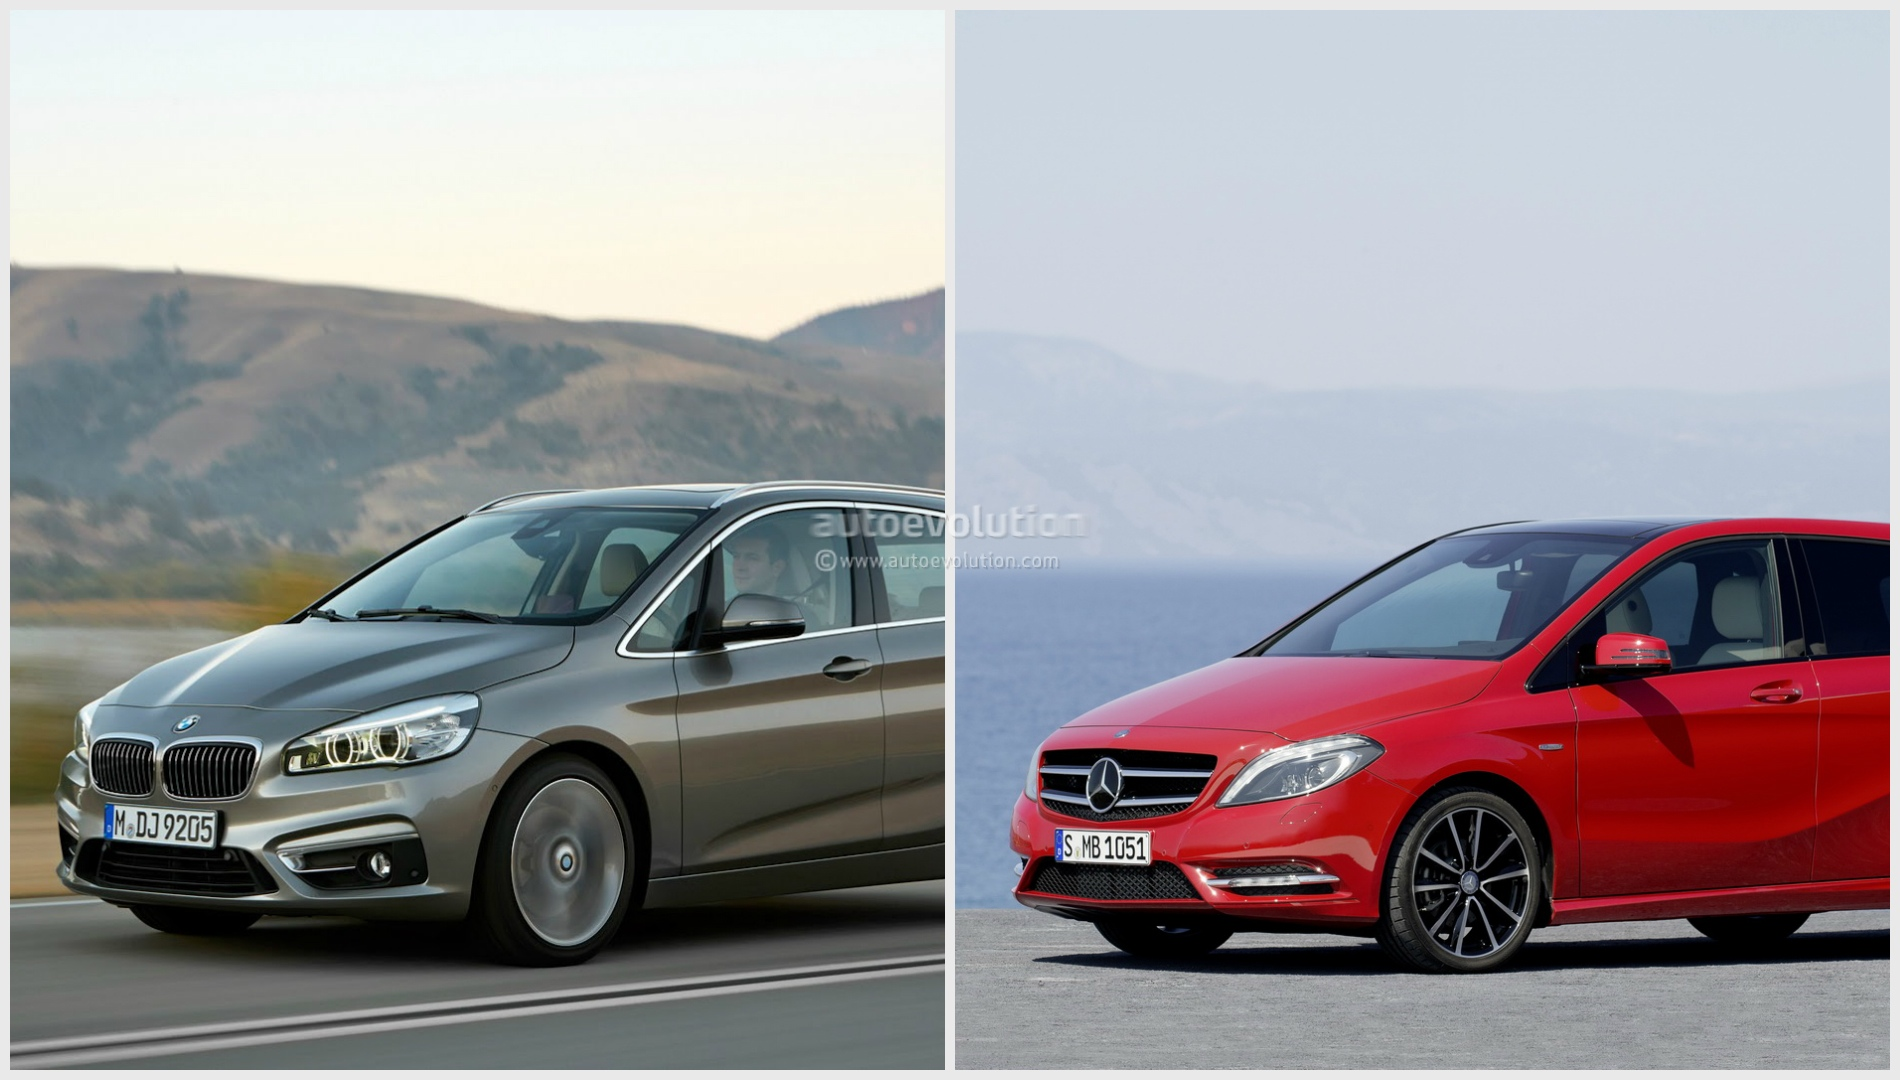 bmw 2 series vs mercedes benz b class photo comparison